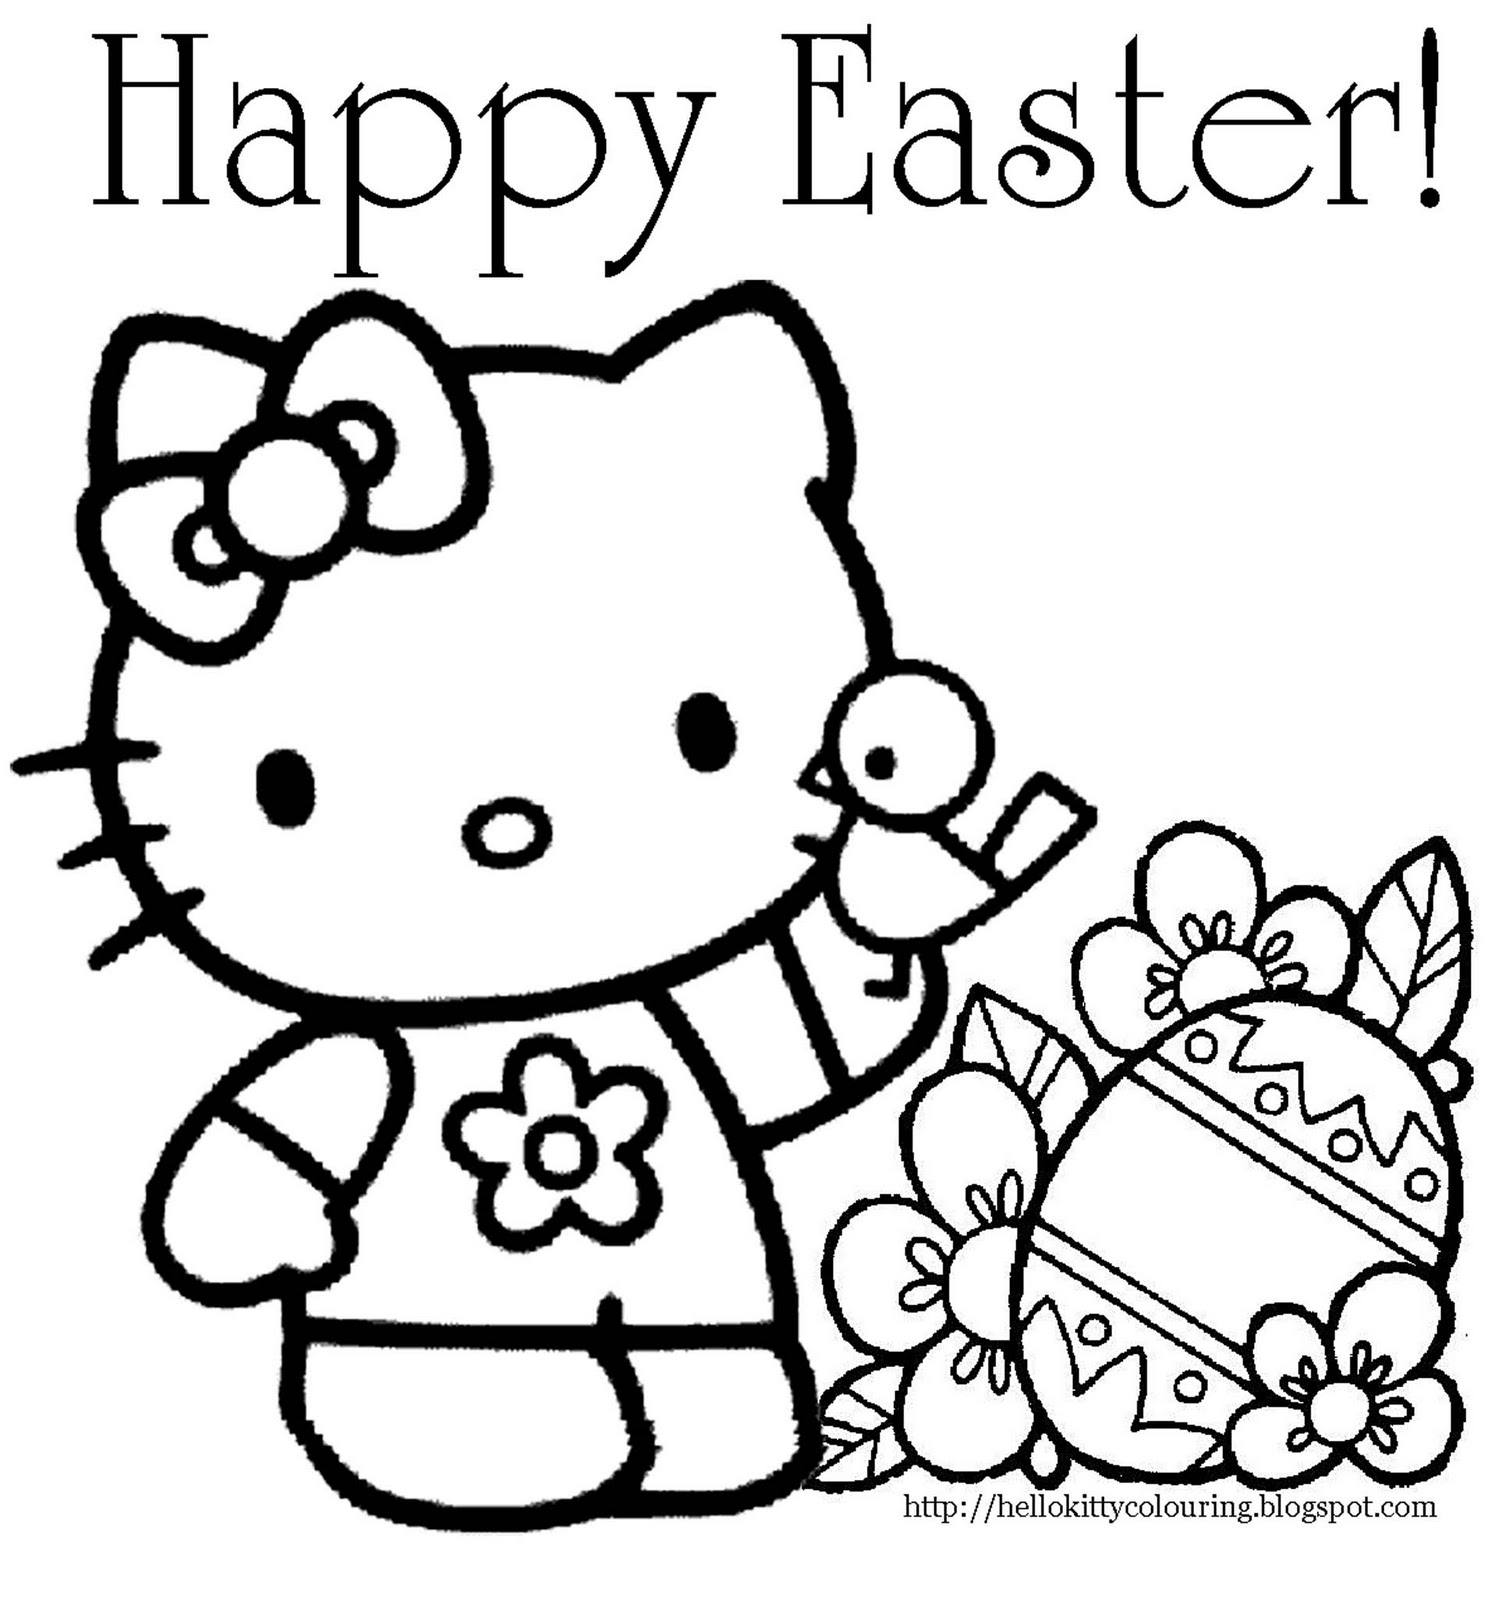 hello kitty coloring pages for free - Hello Kitty coloring pages printable games free coloring